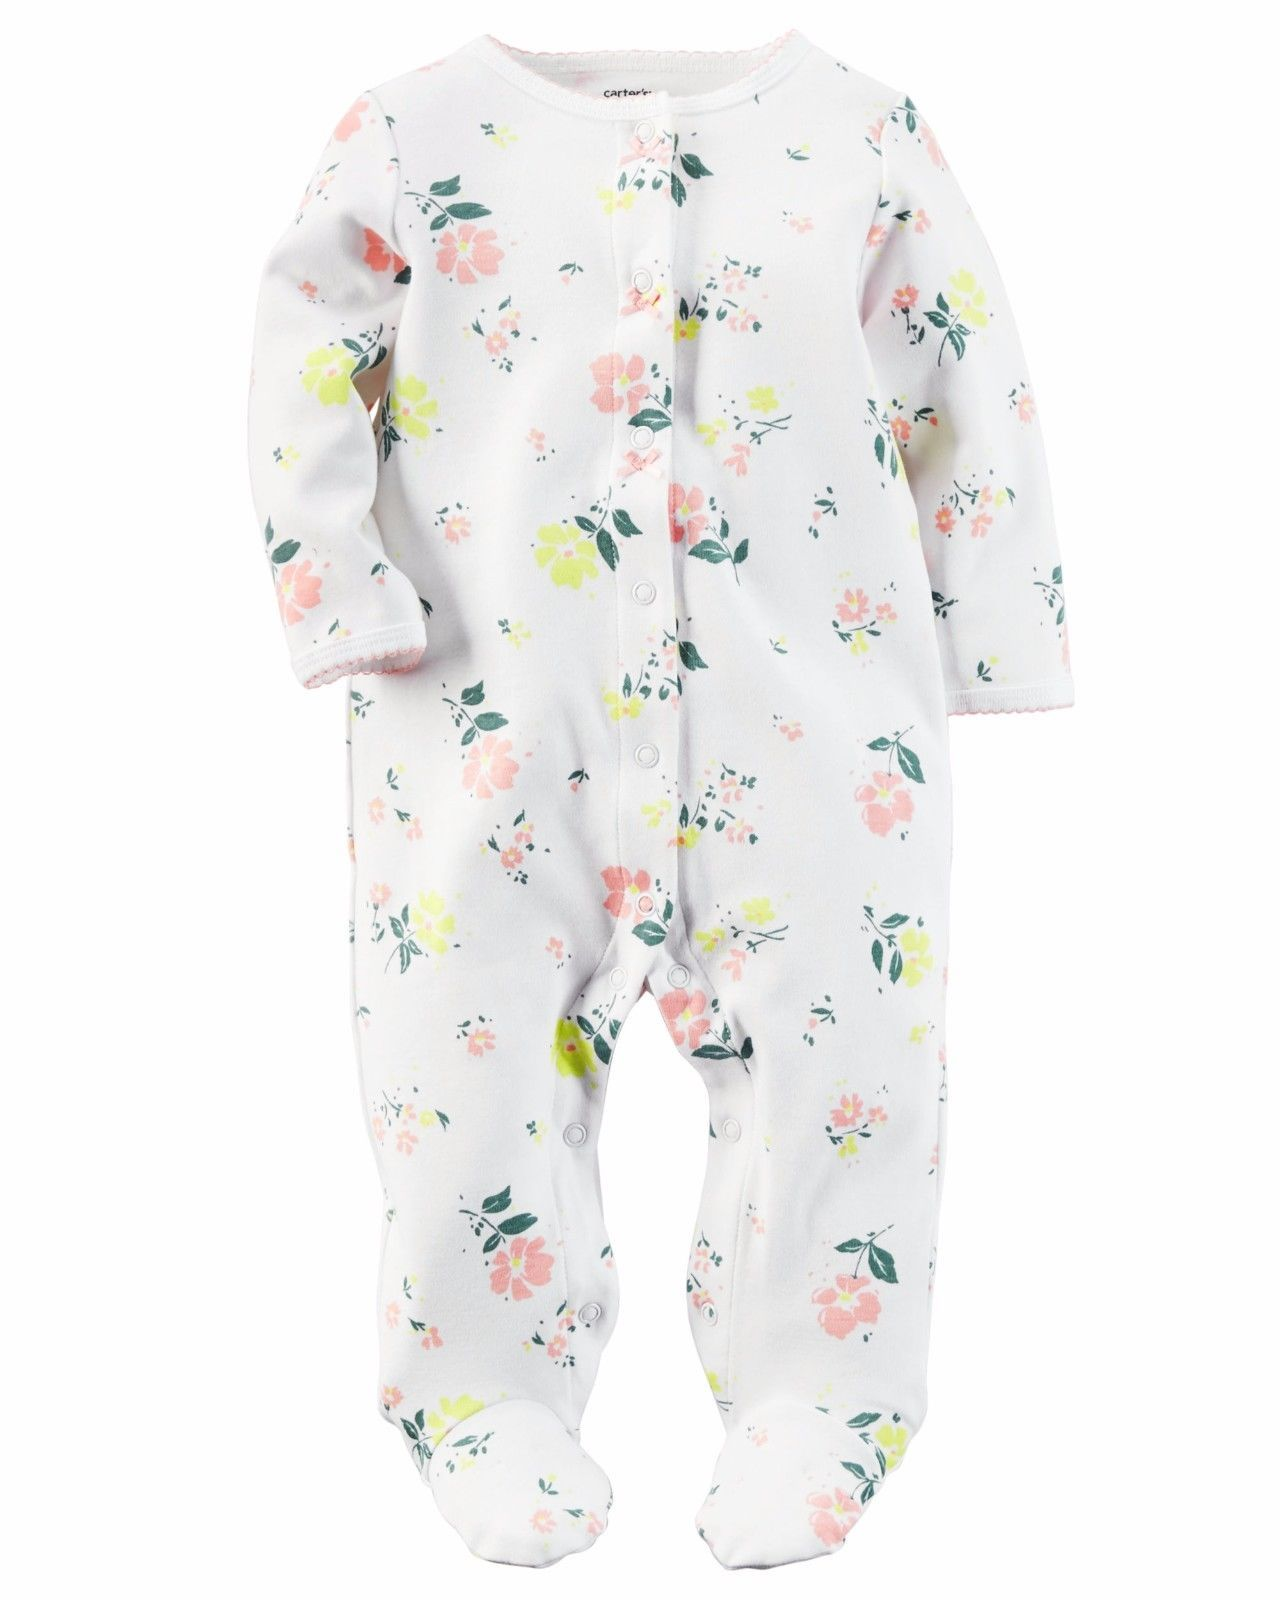 49ad1d41c NEW NWT Girls Carter s 9 Months Sleeper Sleep and Play Muted Floral ...